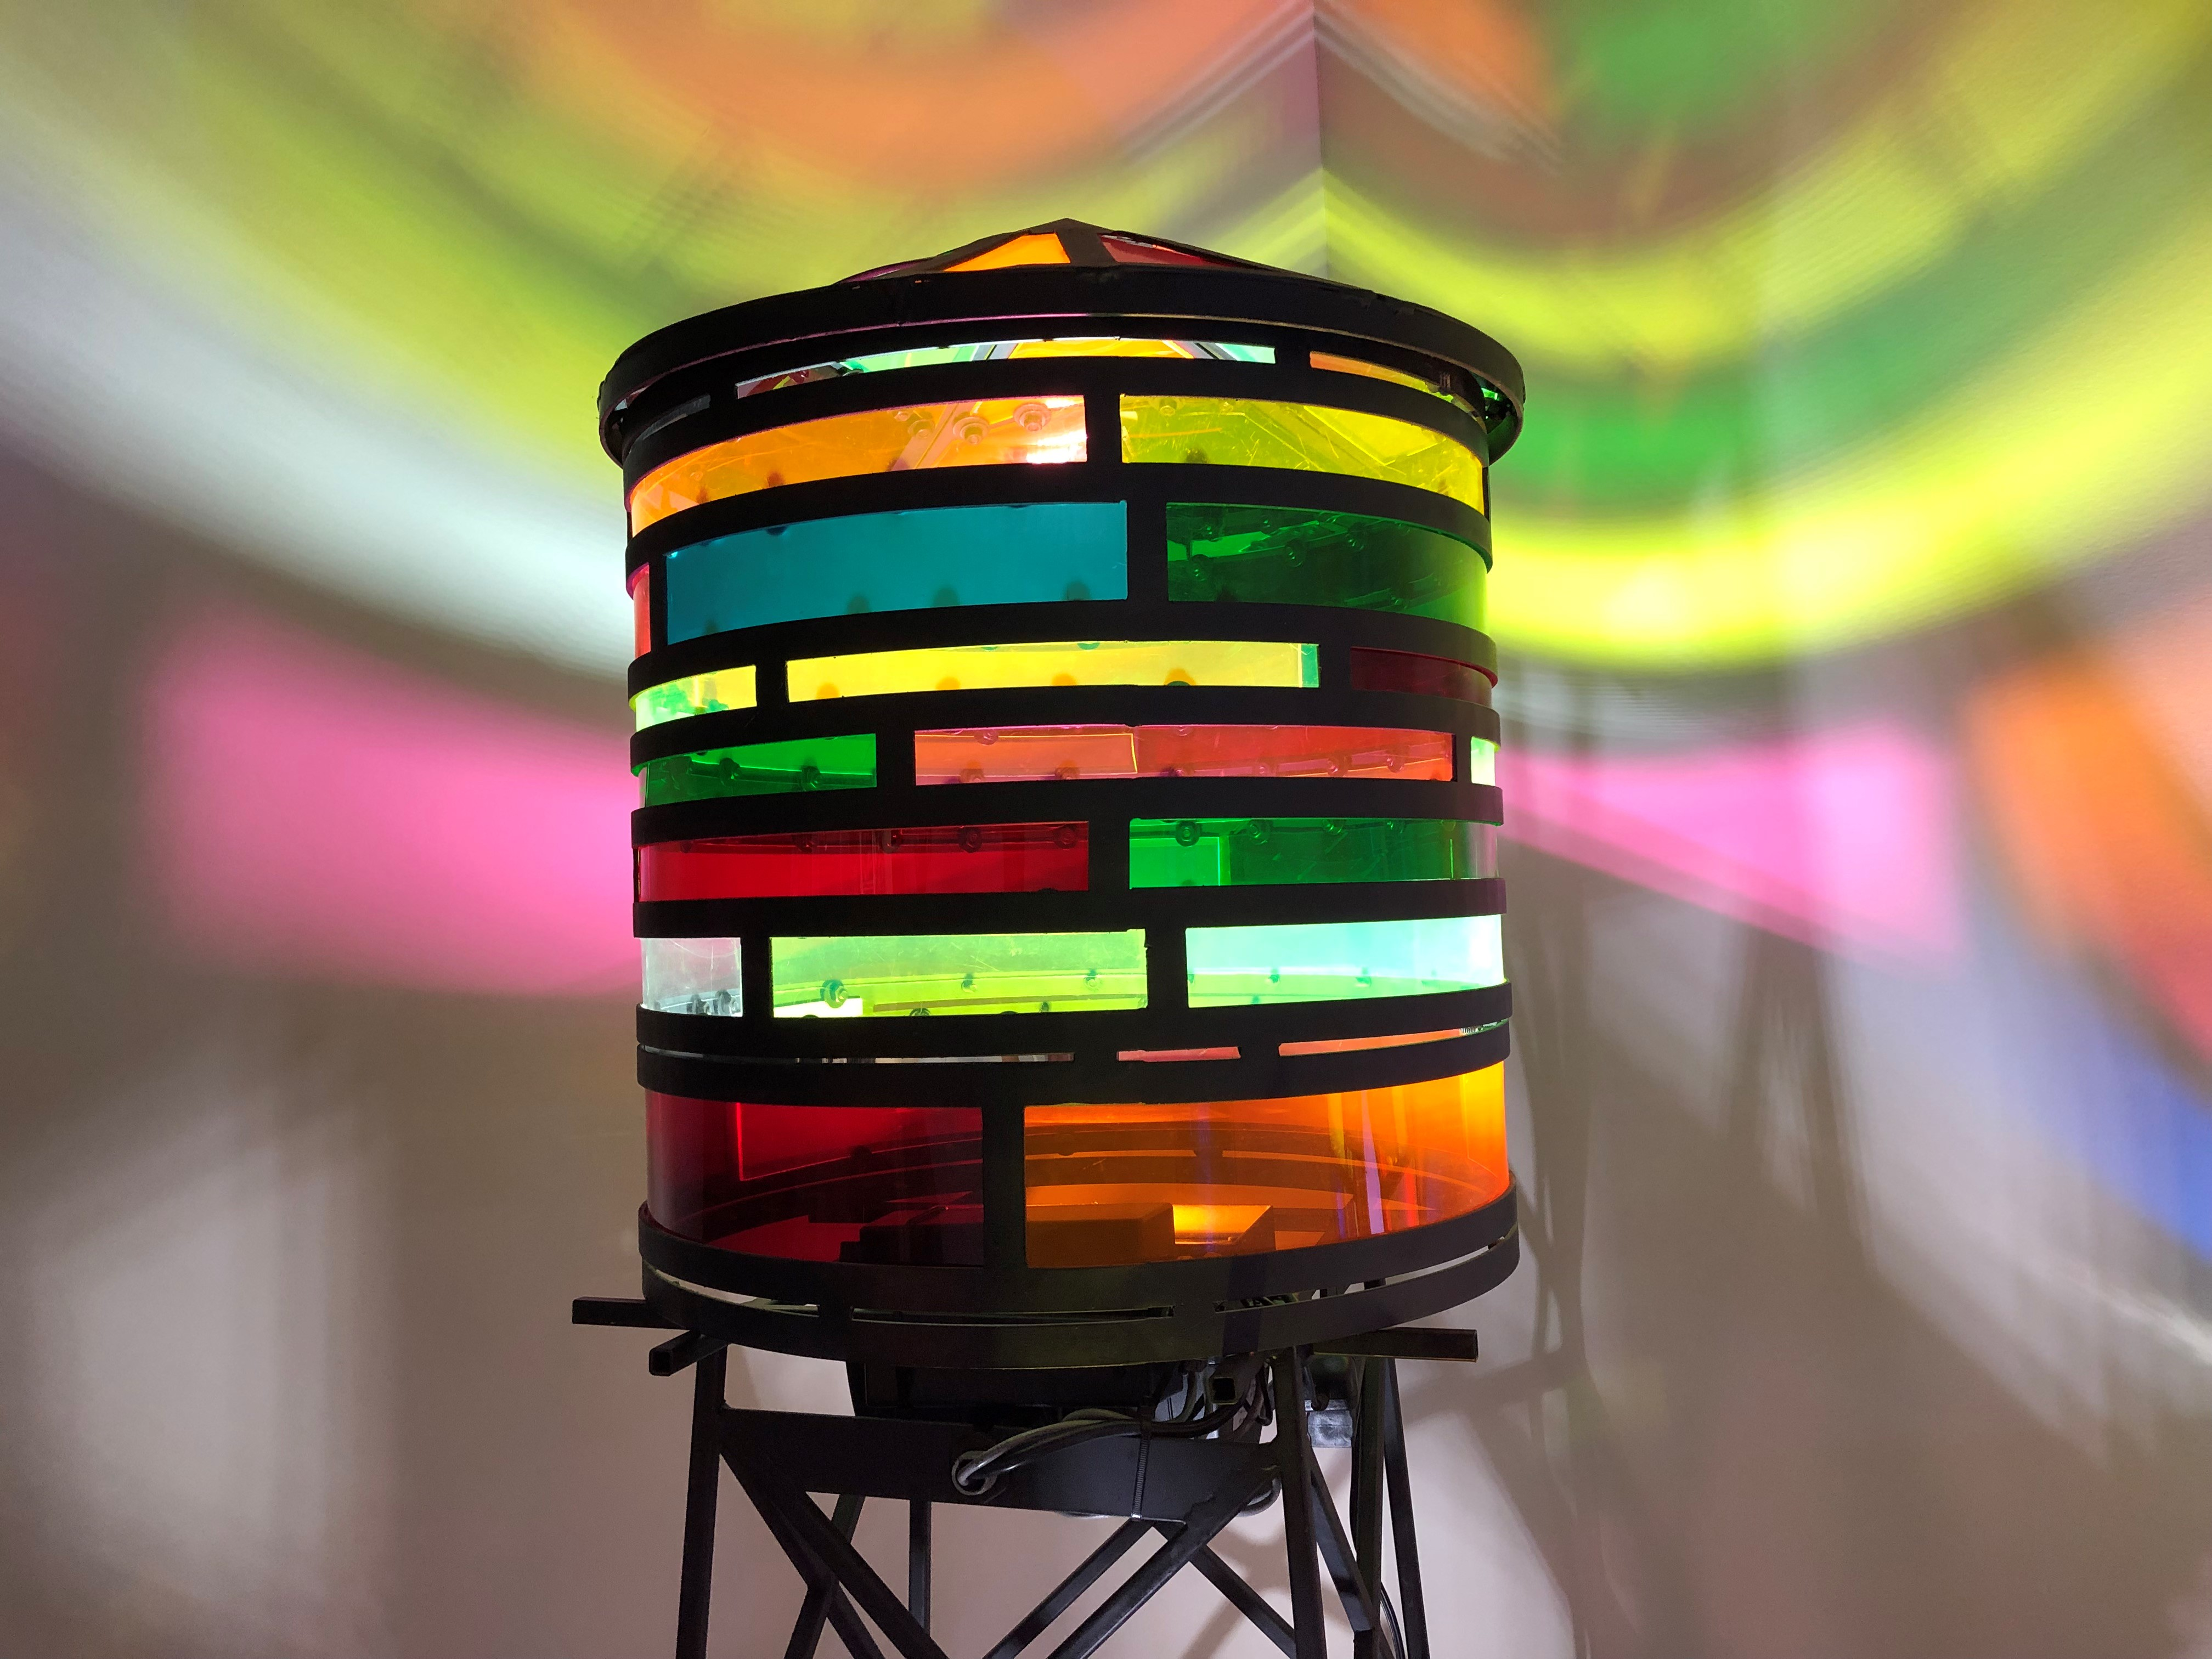 Tom Fruin, Water Tower Scale Model, 2019. Steel, plexi, LED light, Unique work, 80 × 18.75 x 18.75 in or 203.2 × 48 x 48 cm.